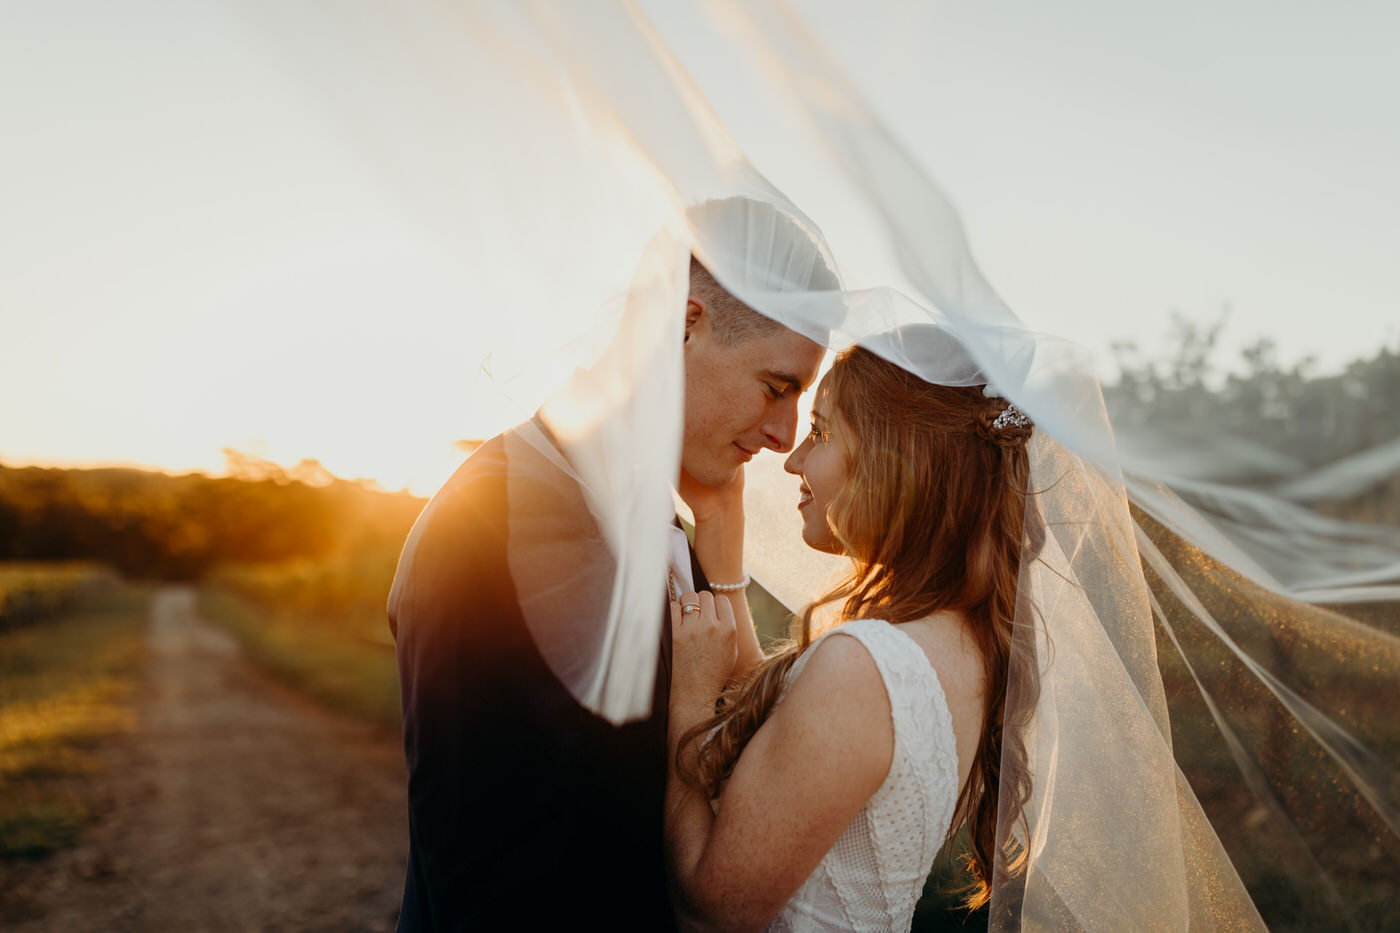 Friends said they are the most beautiful wedding photos they've seen! He'll make the awkwardness of bridal portraits anything but and create magic. - KAYLA + JOSH - BOWRAL, AU